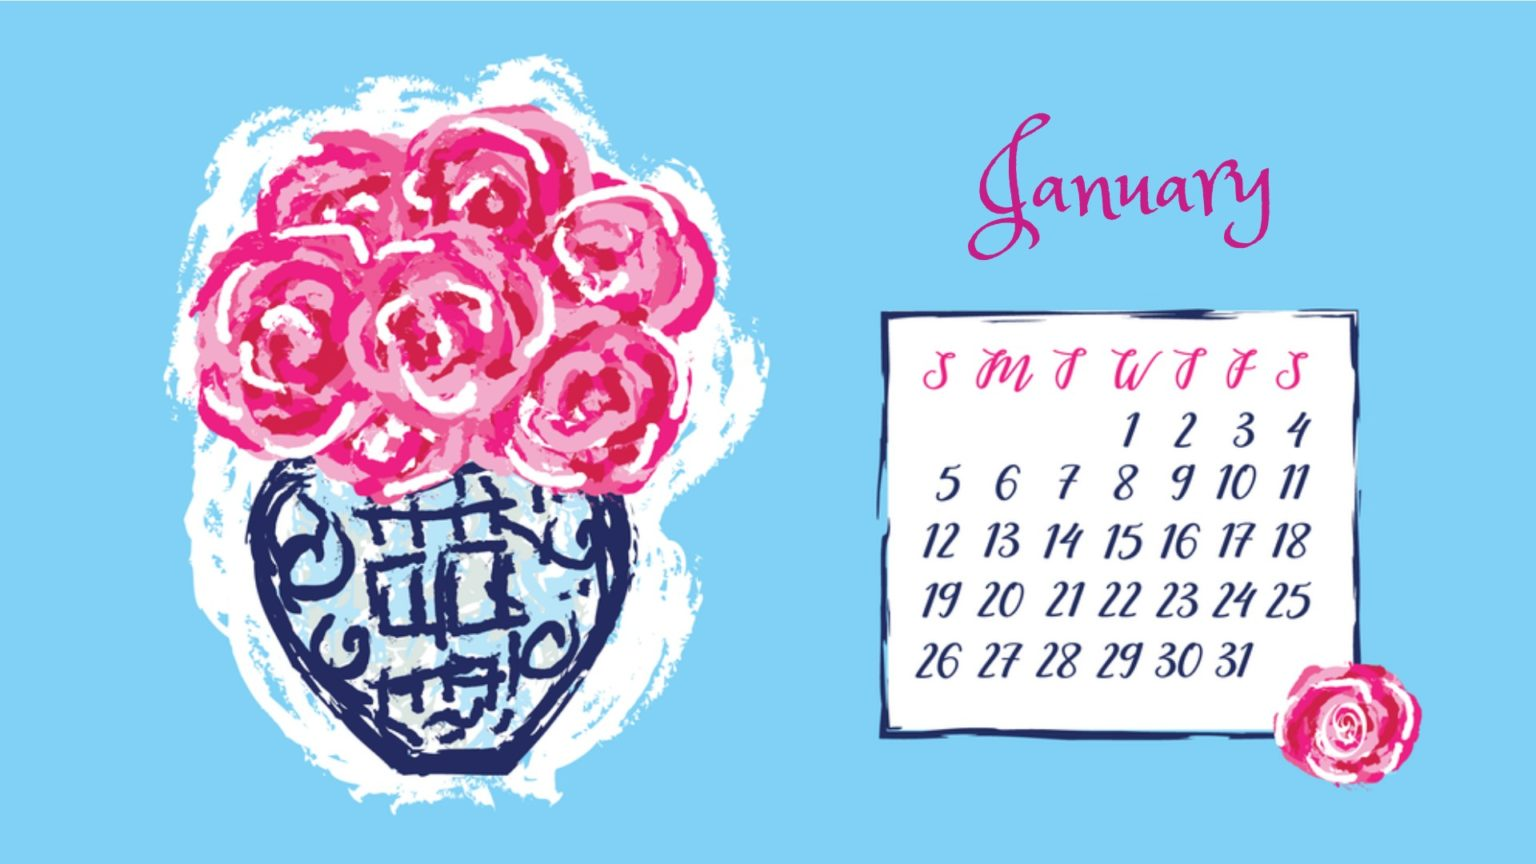 January 2020 Flower Calendar Wallpaper